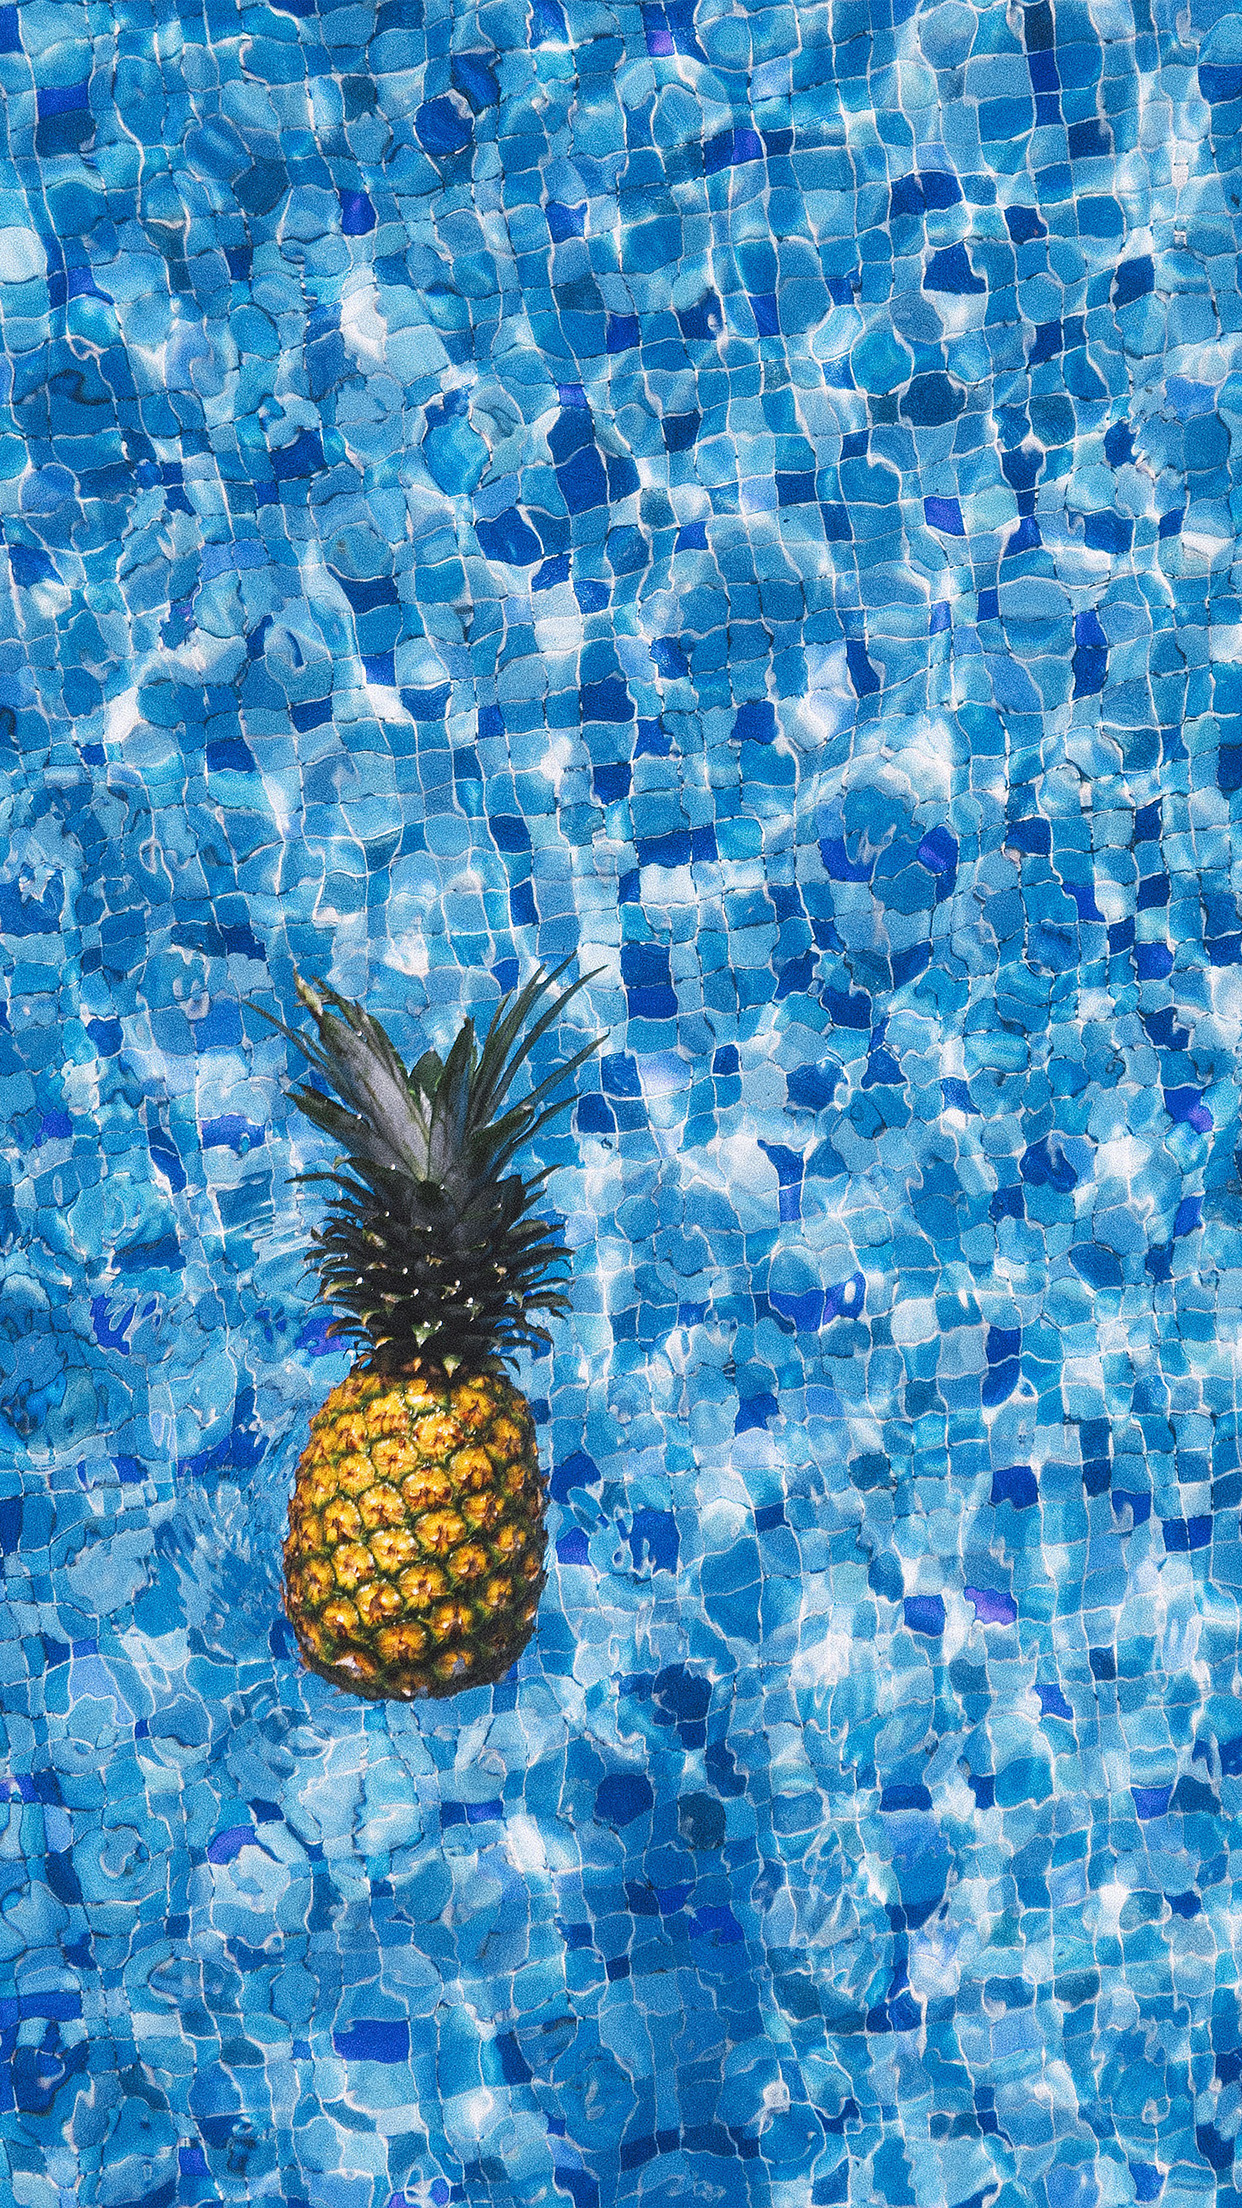 nh20-sea-water-pineapple-swim-ripple-wave-blue-wallpaper